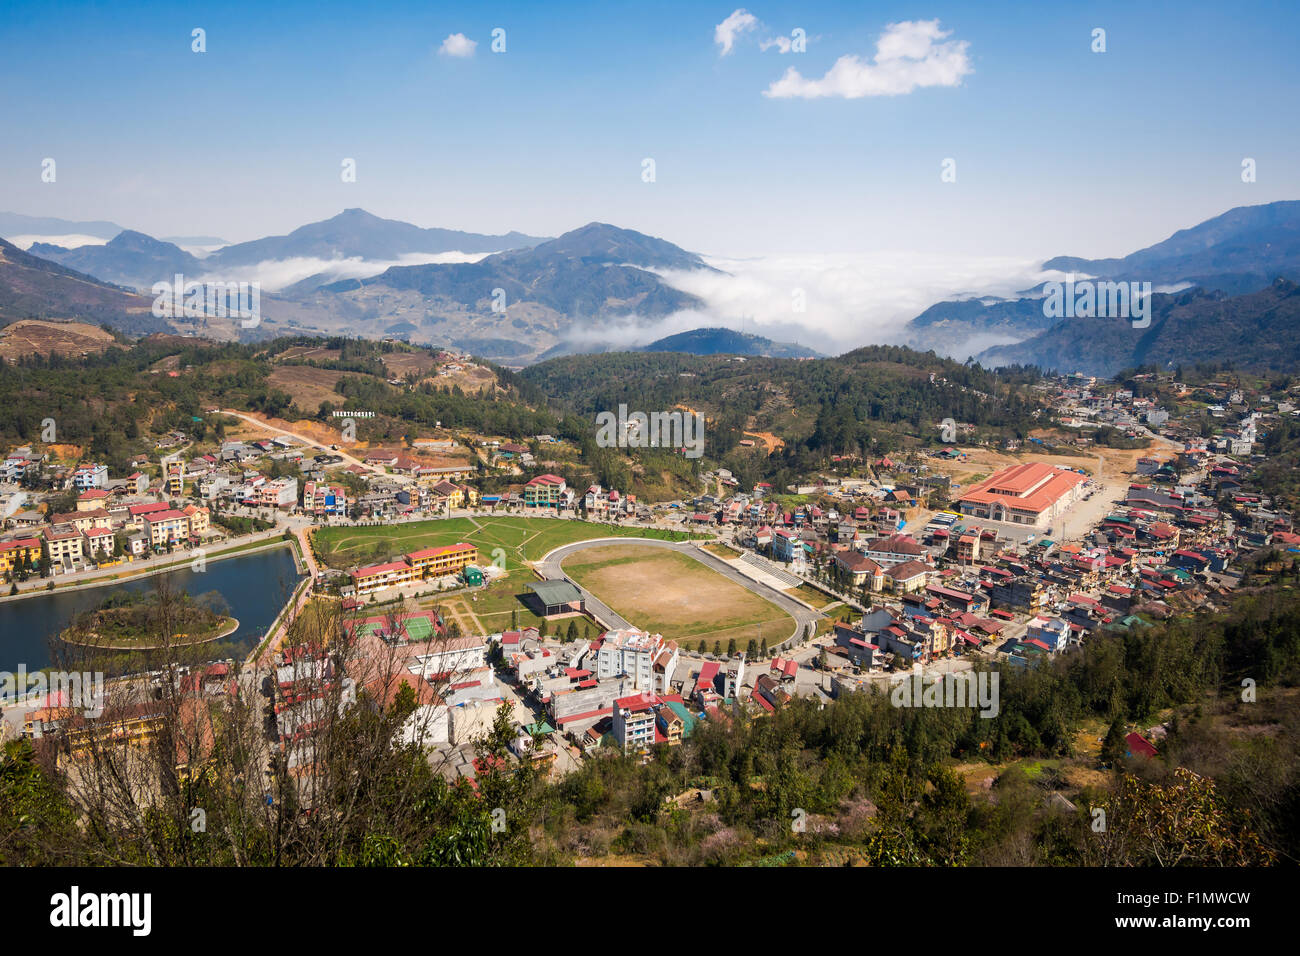 General view of Sapa Town, Lao Cai Province, North Vietnam. - Stock Image